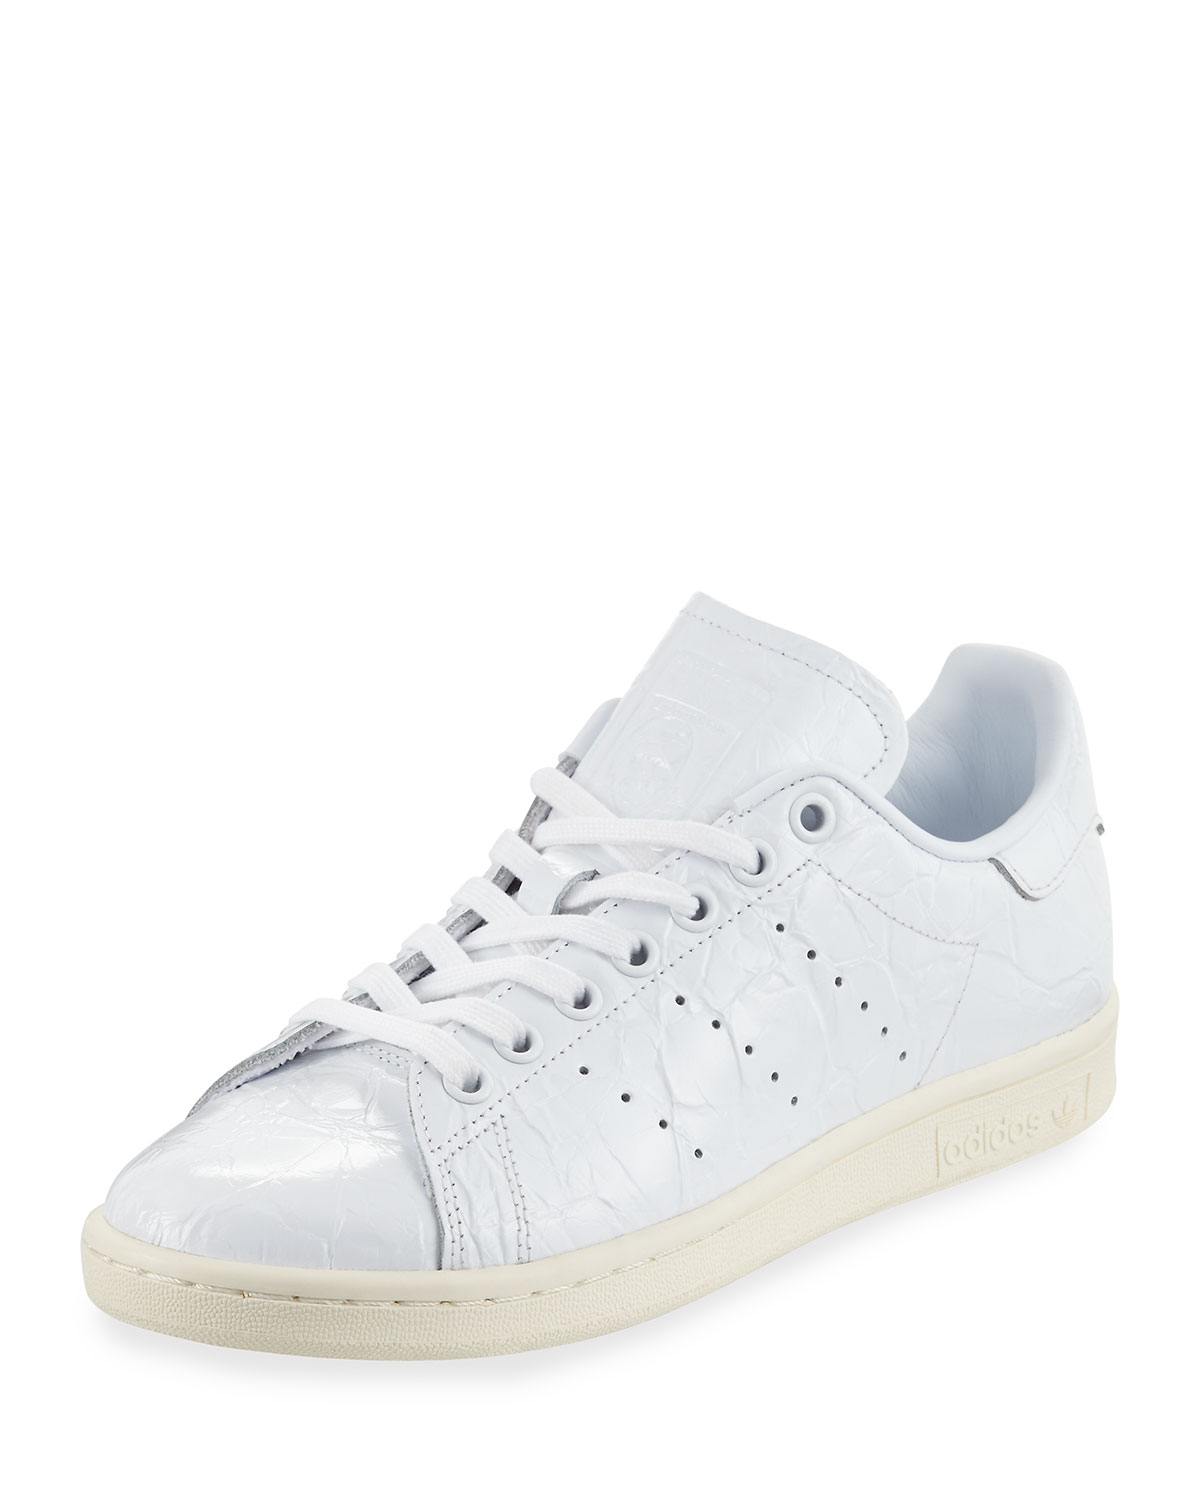 adidas superstar original rosa